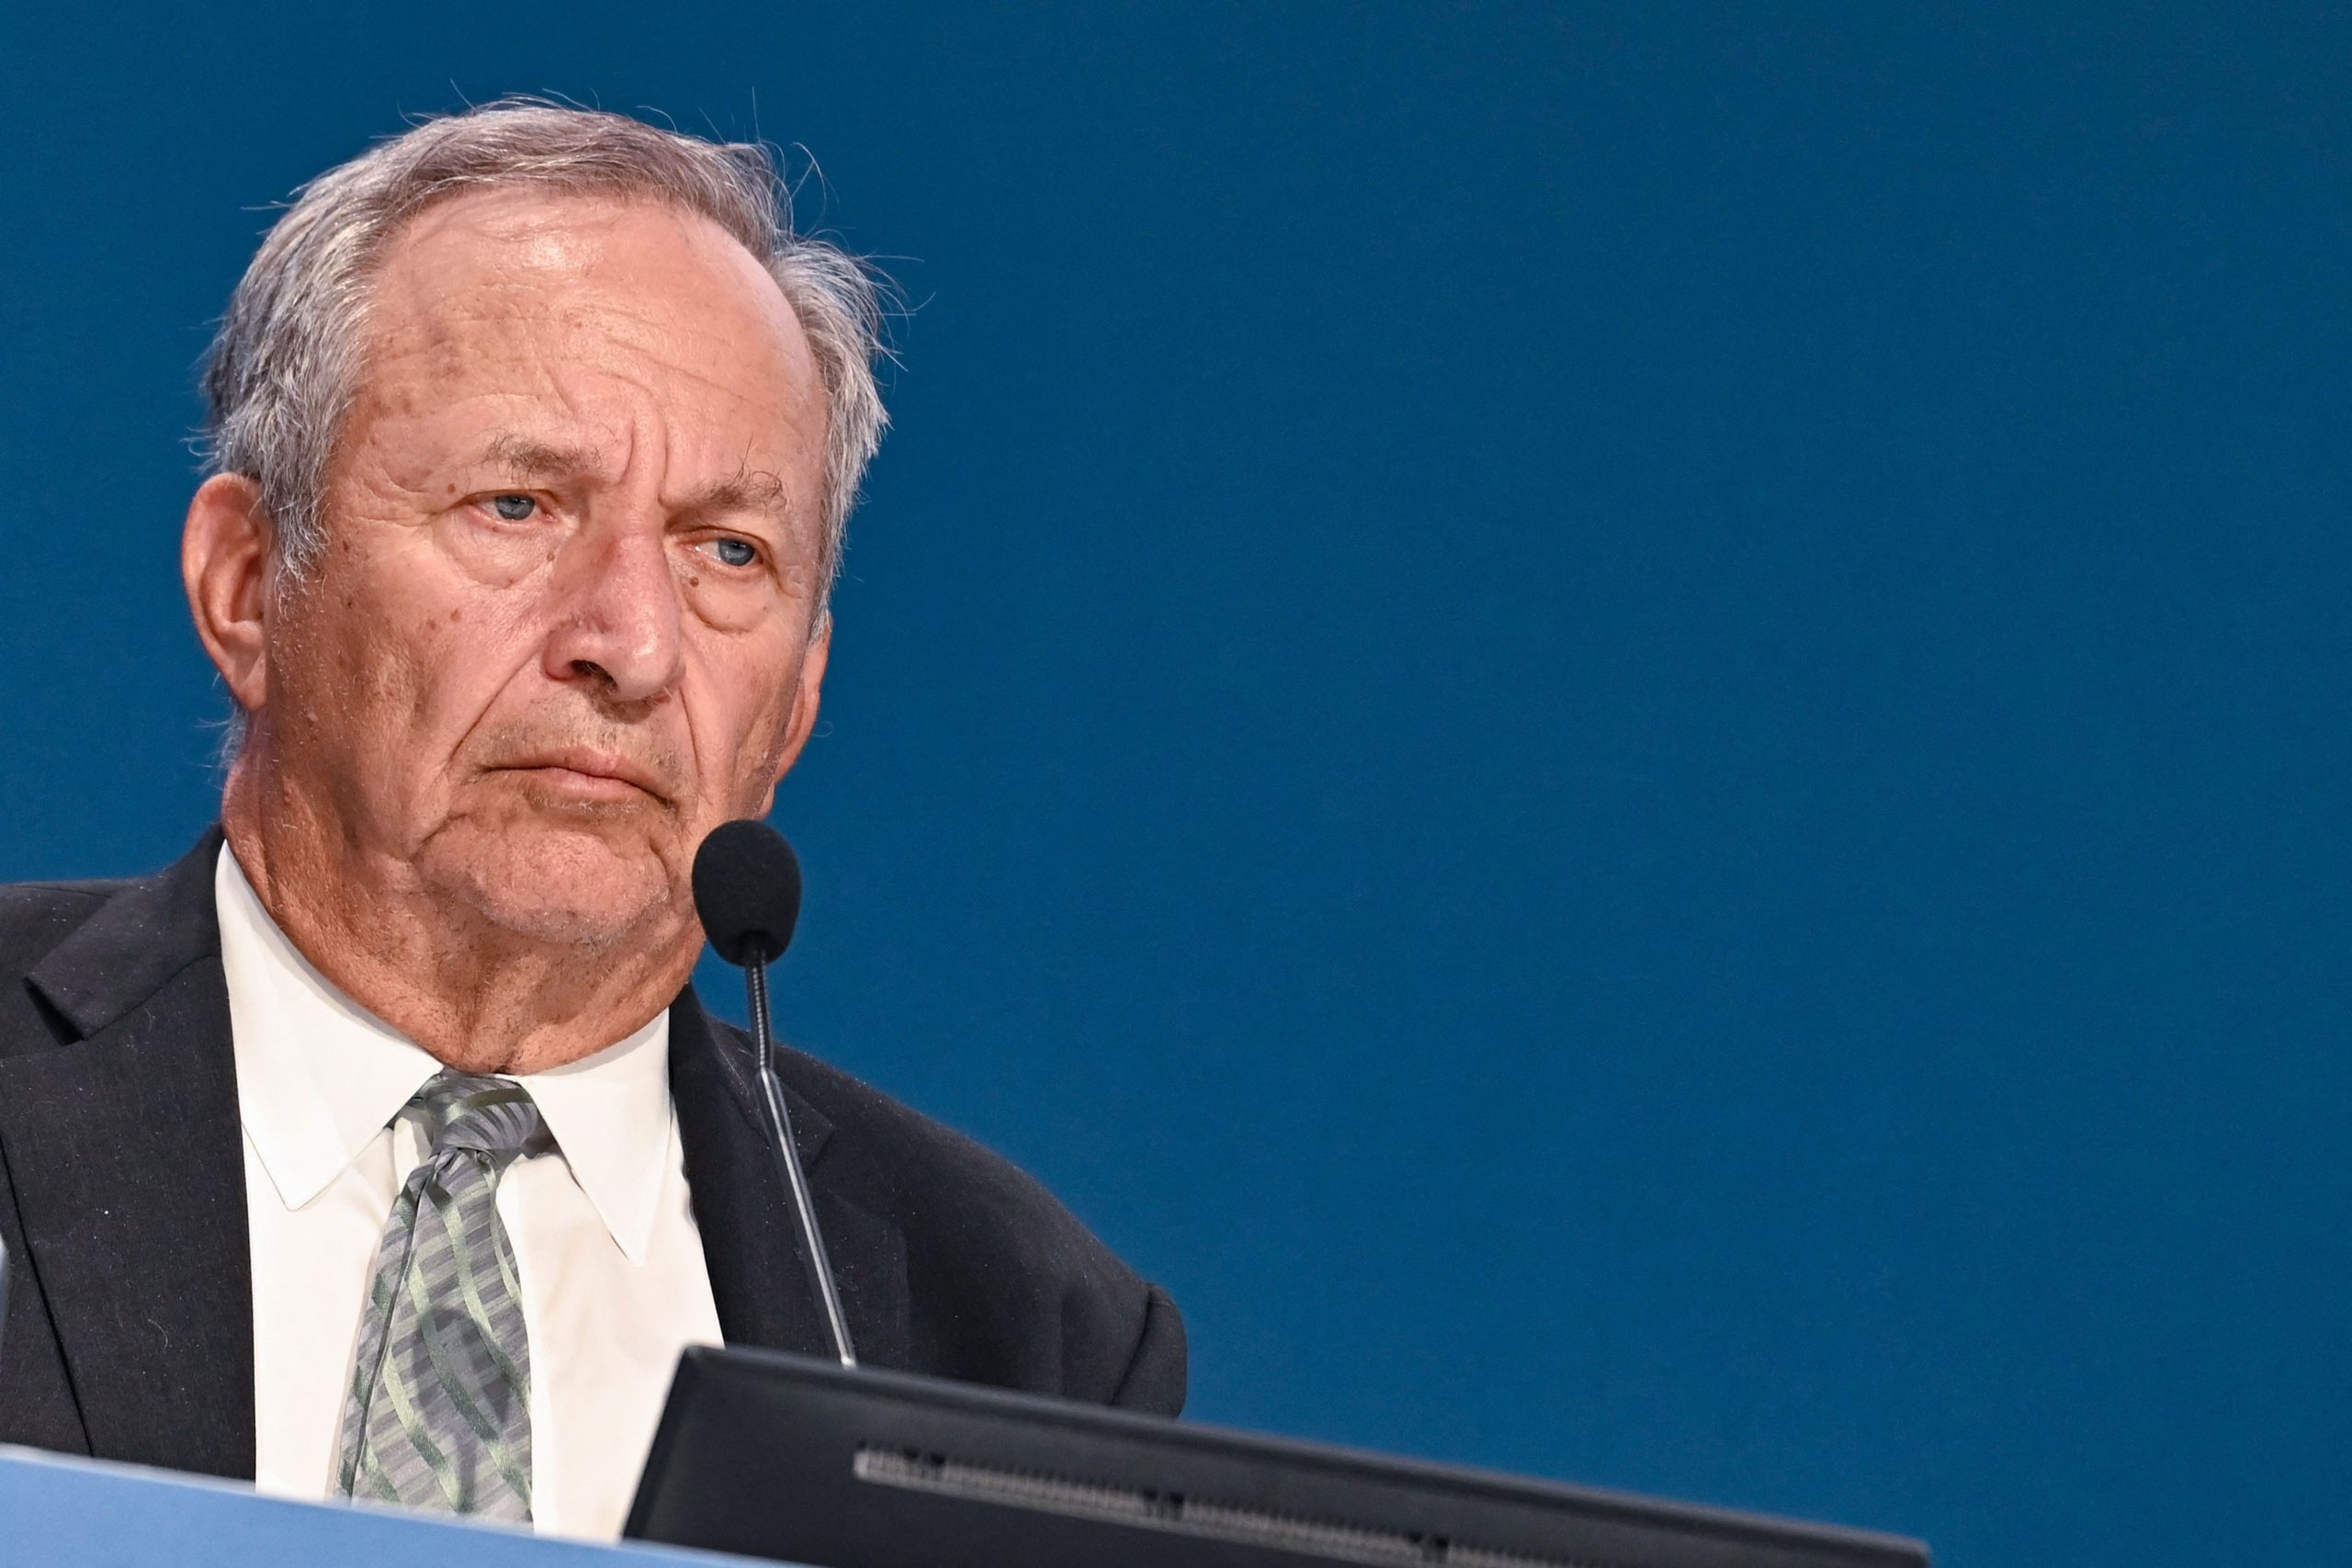 Lawrence Summers, who served as Treasury secretary under former President Bill Clinton, signed the letter Wednesday. (Andreas Solaro/AFP via Getty Images)